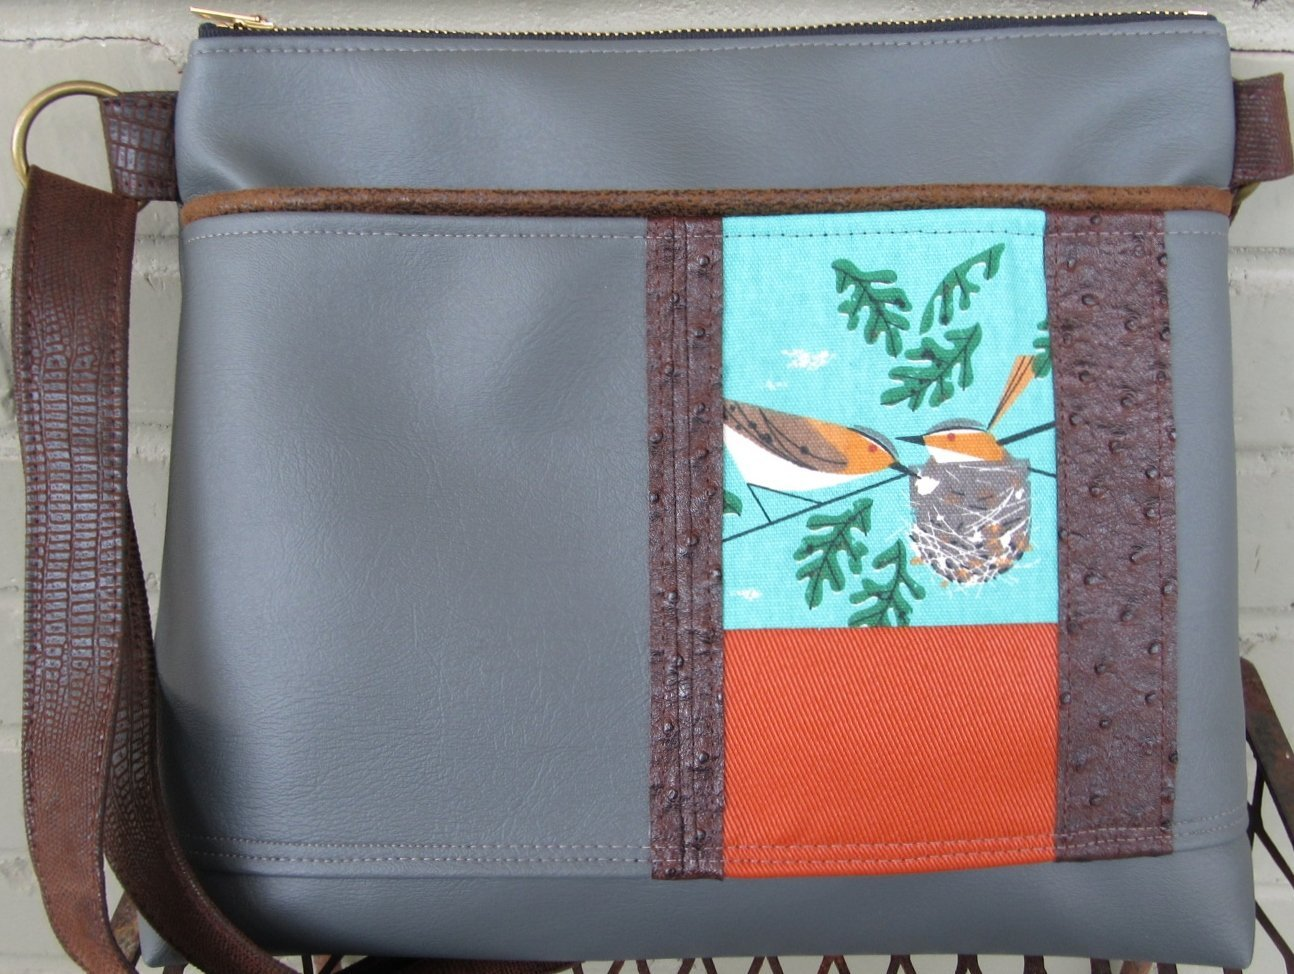 Crossbody Bag Large - Charley Harper Bird in a Nest Messenger Bag in Gray Vegan Leather